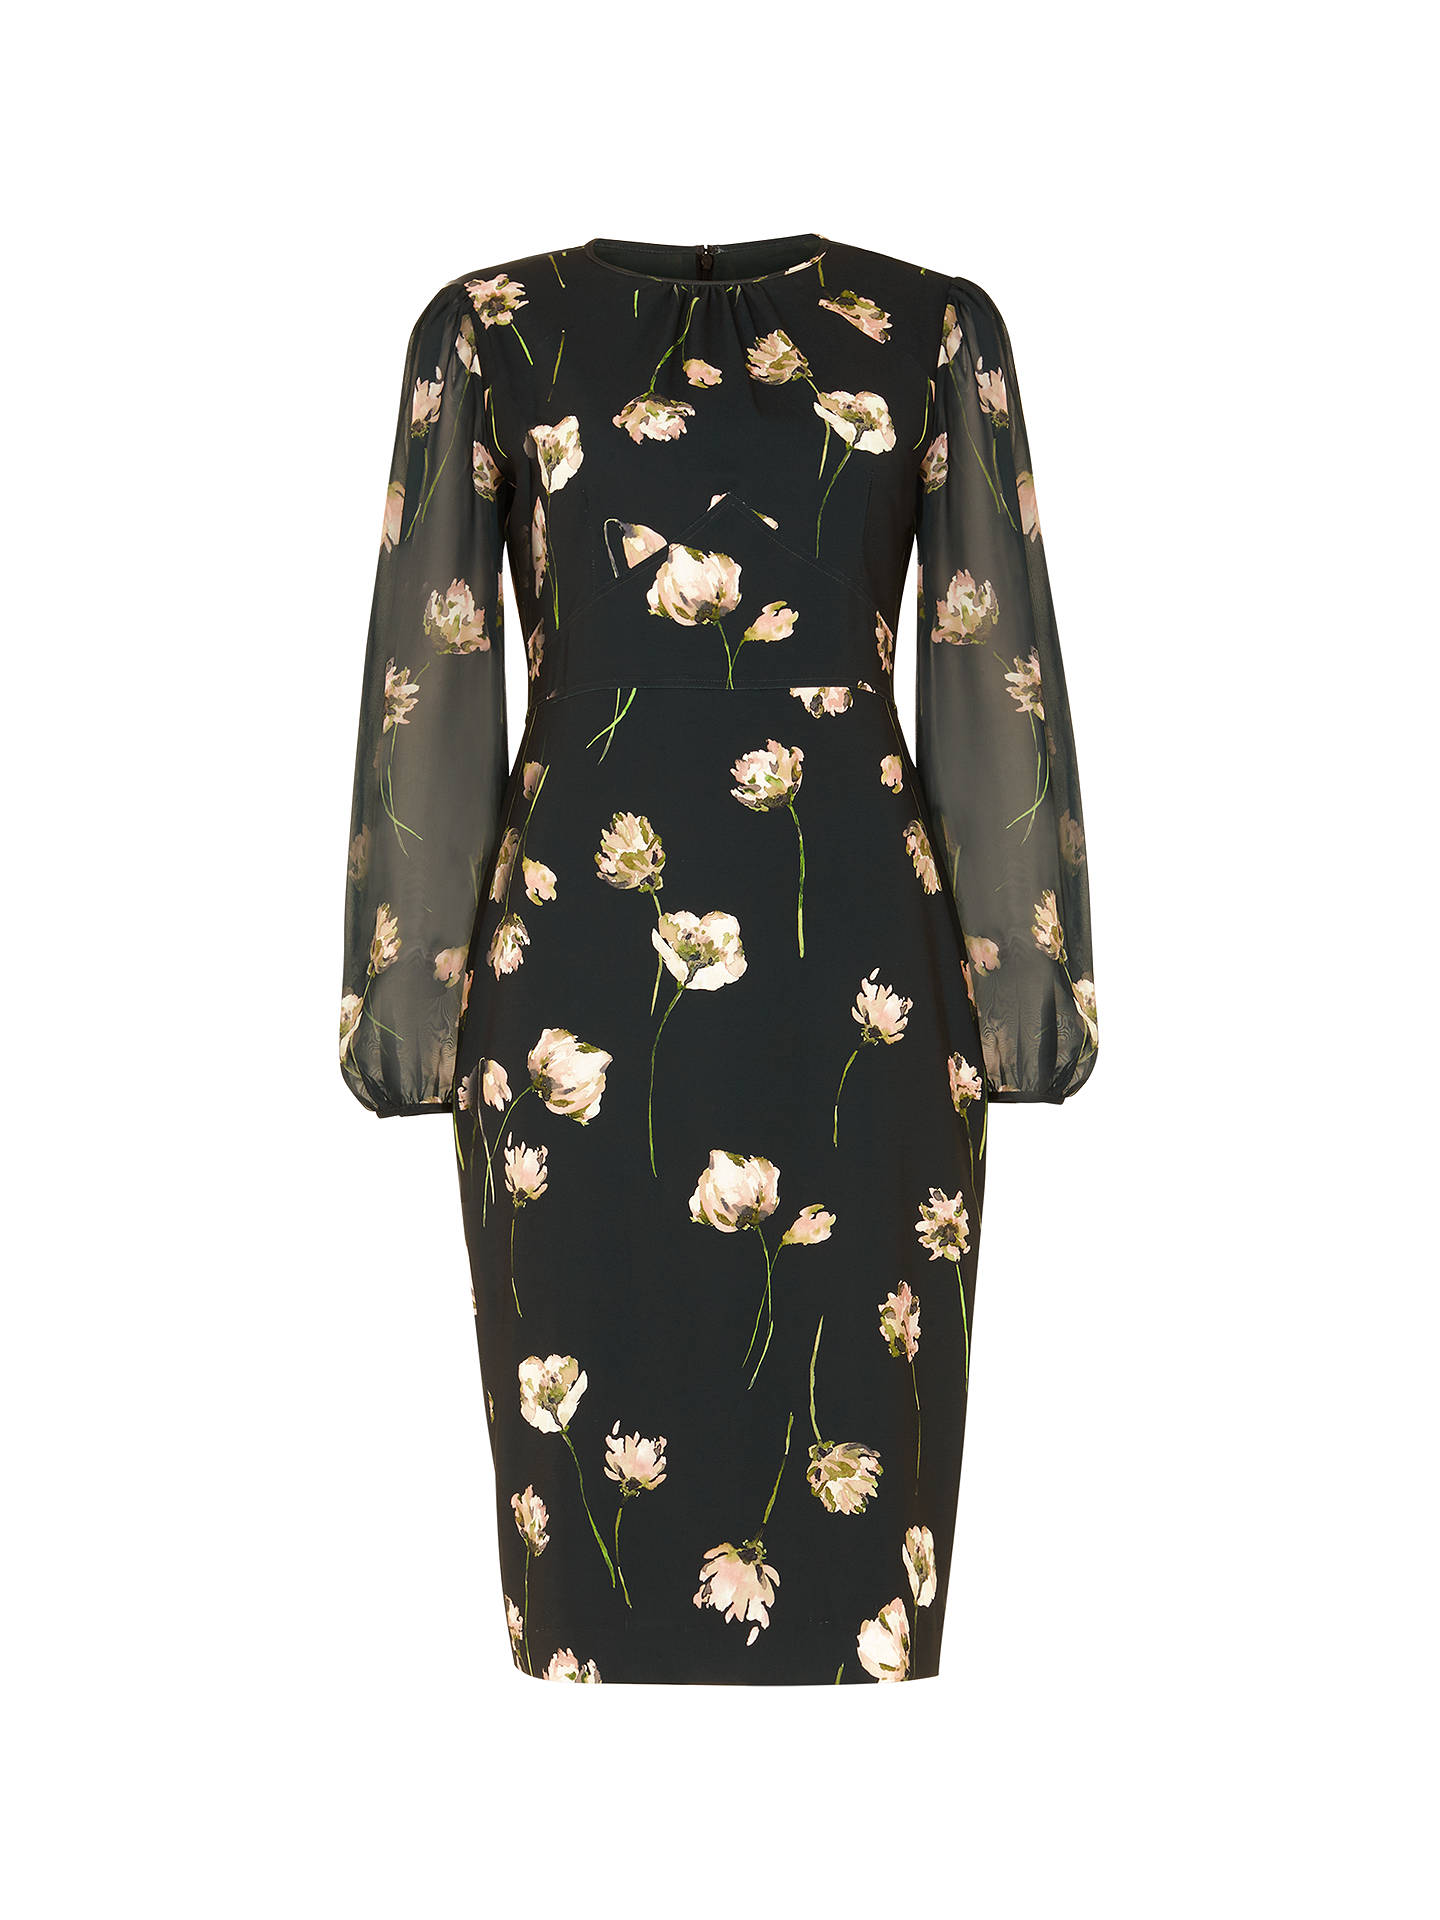 BuyPhase Eight Sorina Printed Floral Dress, Peacock, 12 Online at johnlewis.com